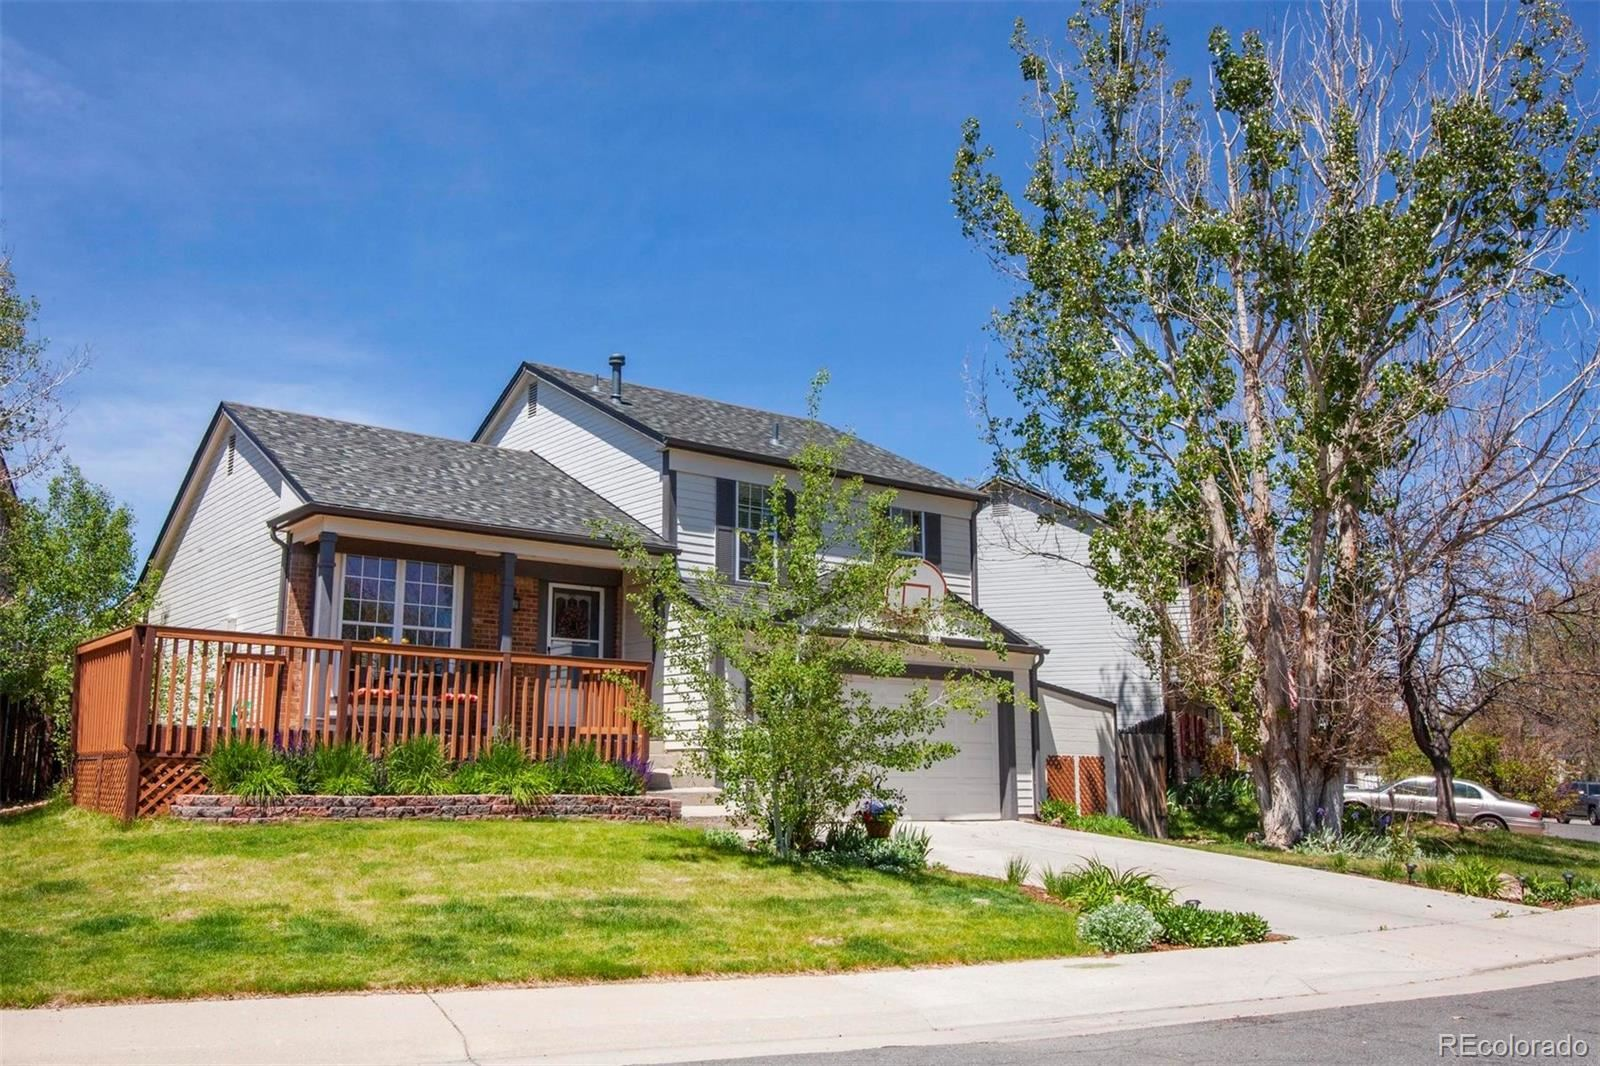 11205 W 102nd Place, Westminster, CO 80021 - #: 6381251